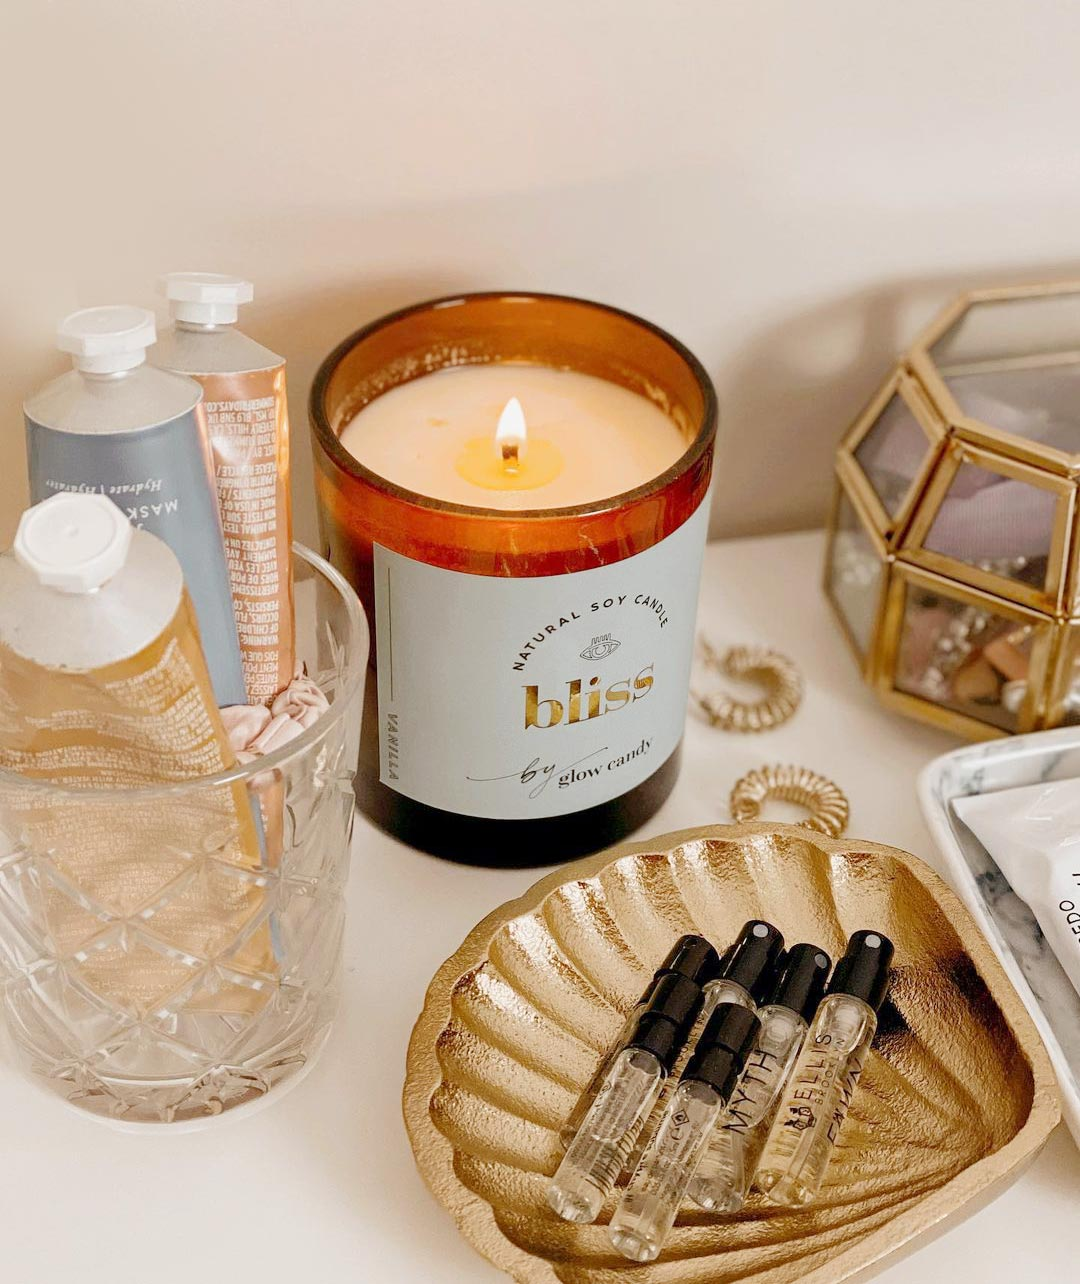 A photograph by one of Glow Candy's customers, shared to social media. The photo shows the 'Bliss' candle positioned on a counter alongside various beauty products.